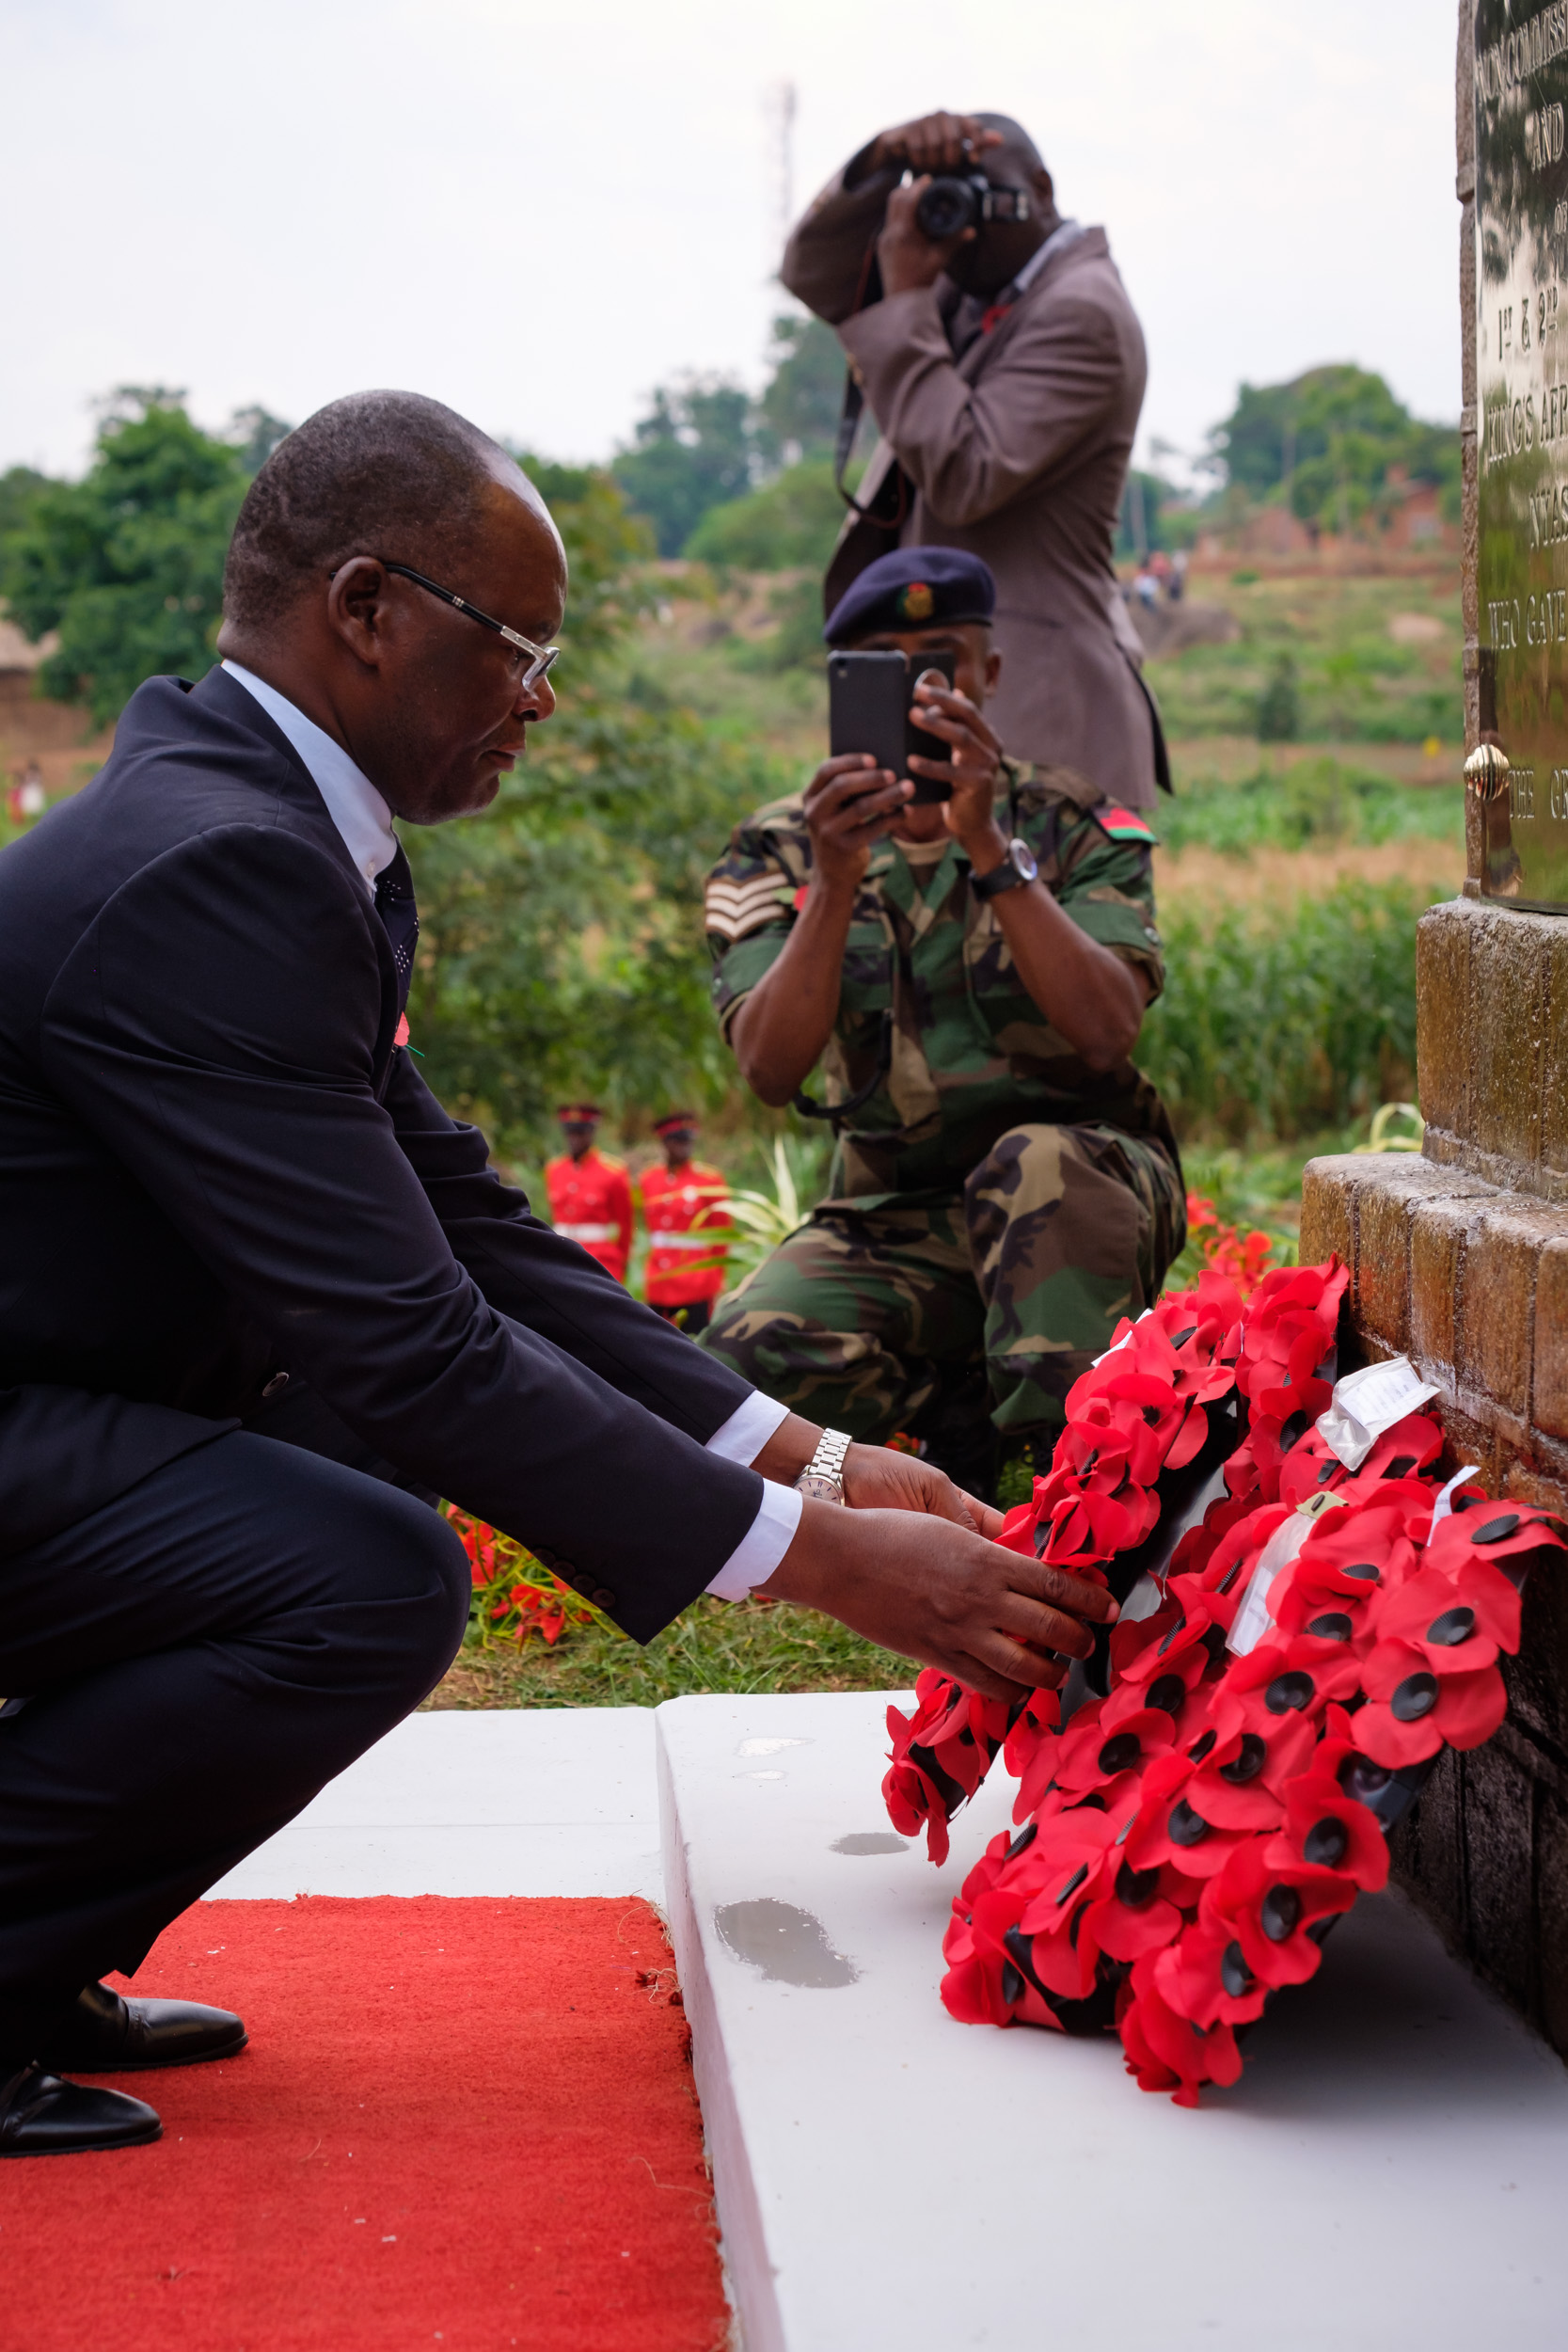 A local polititian lays a wreath.